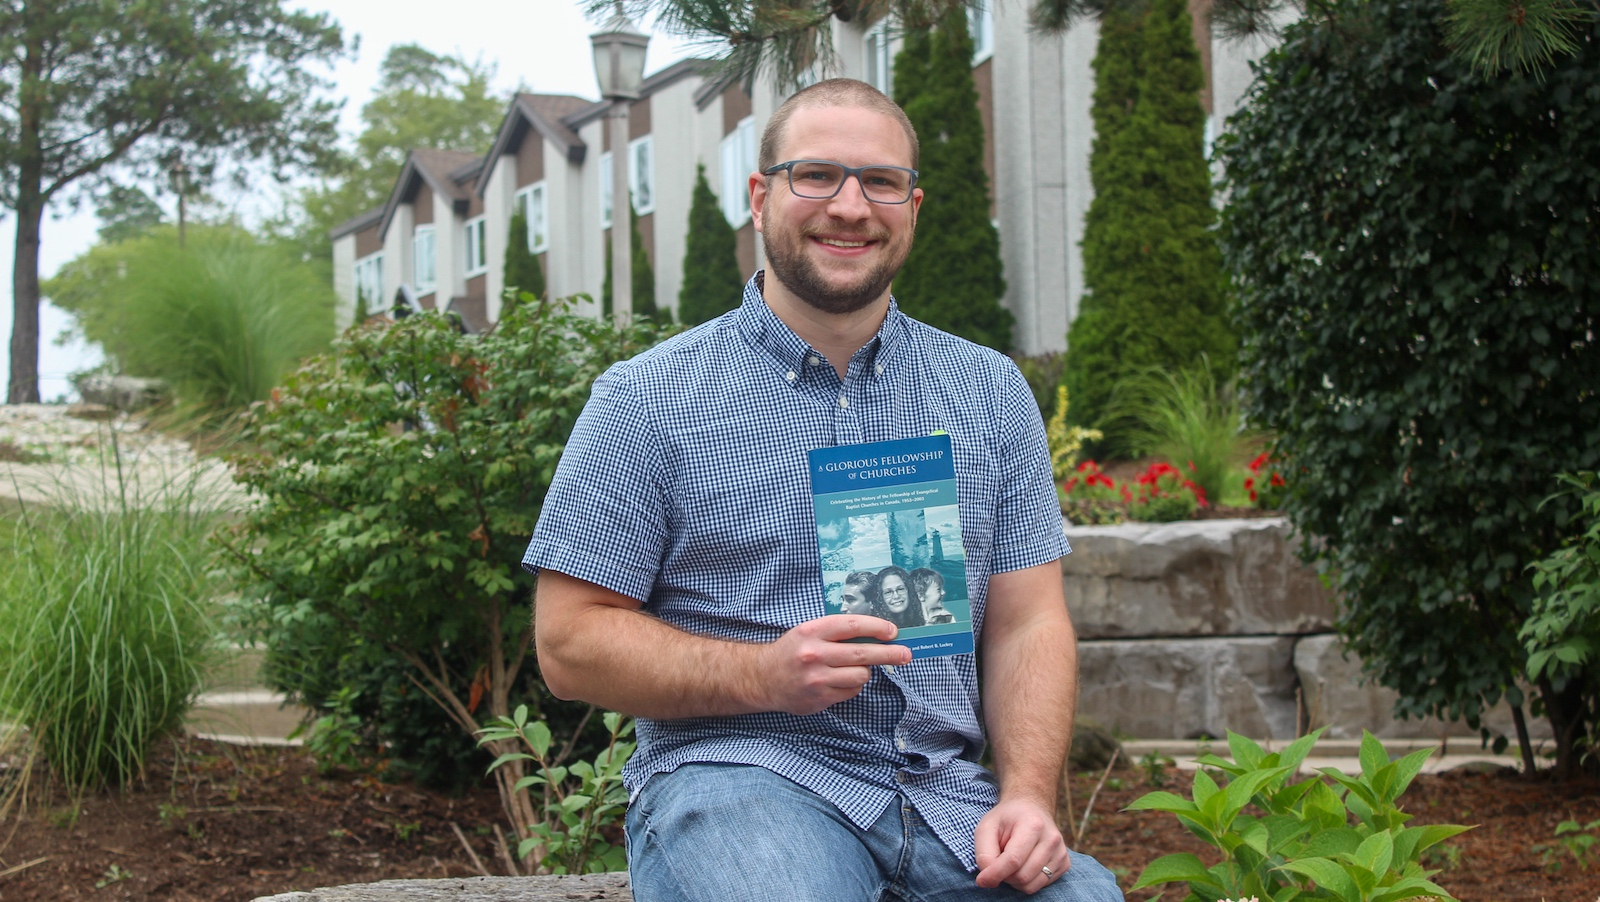 Telling the Story of The Fellowship in Canada